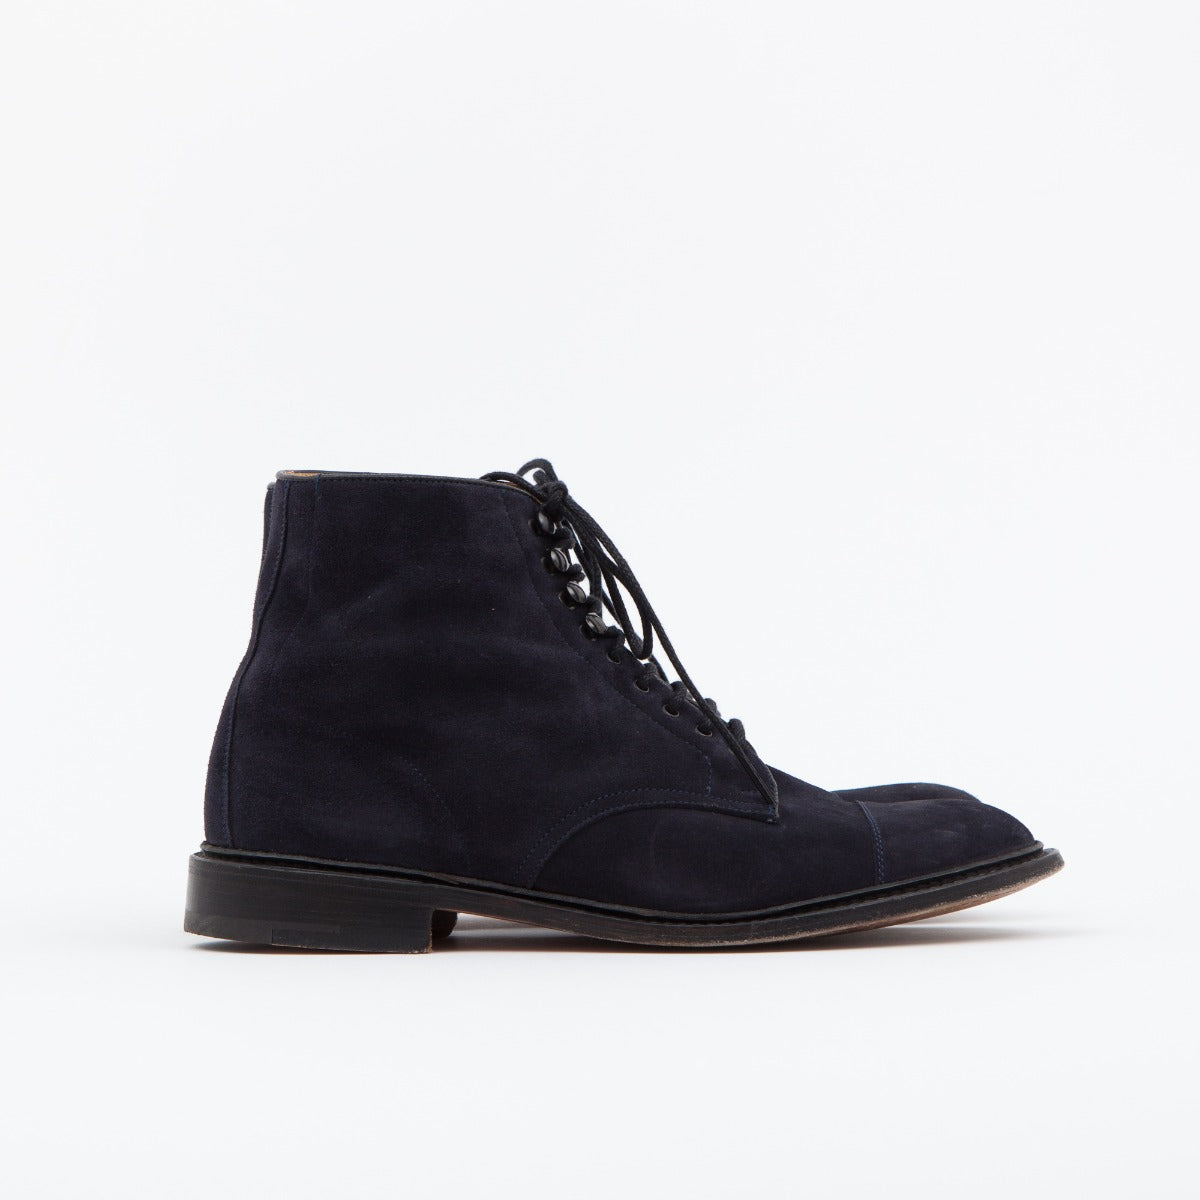 Trickers Suede Boots